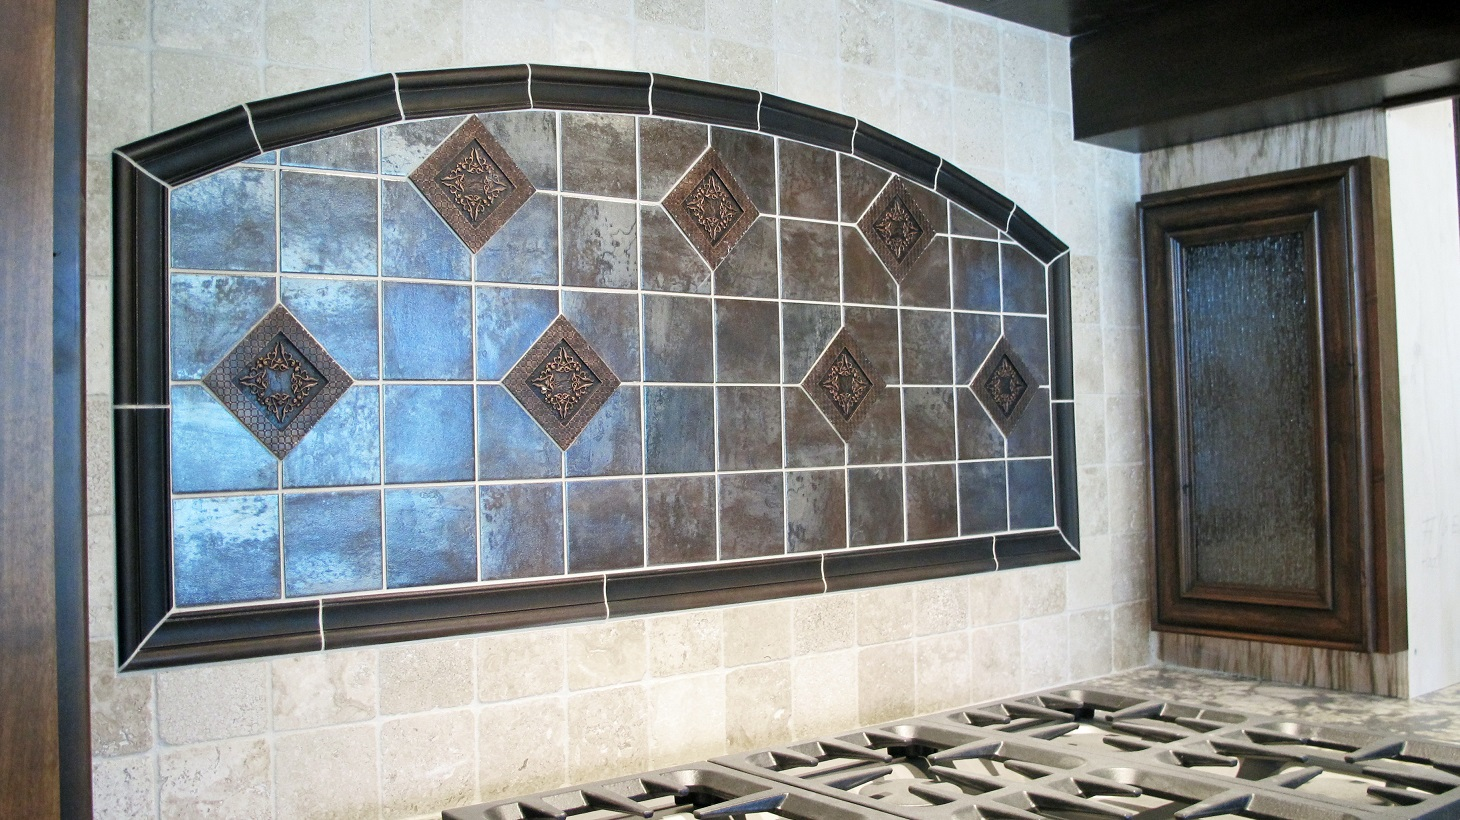 Large Custom Home With Porcelain Tile And Natural Stone - Decorative 4x4 metal tiles